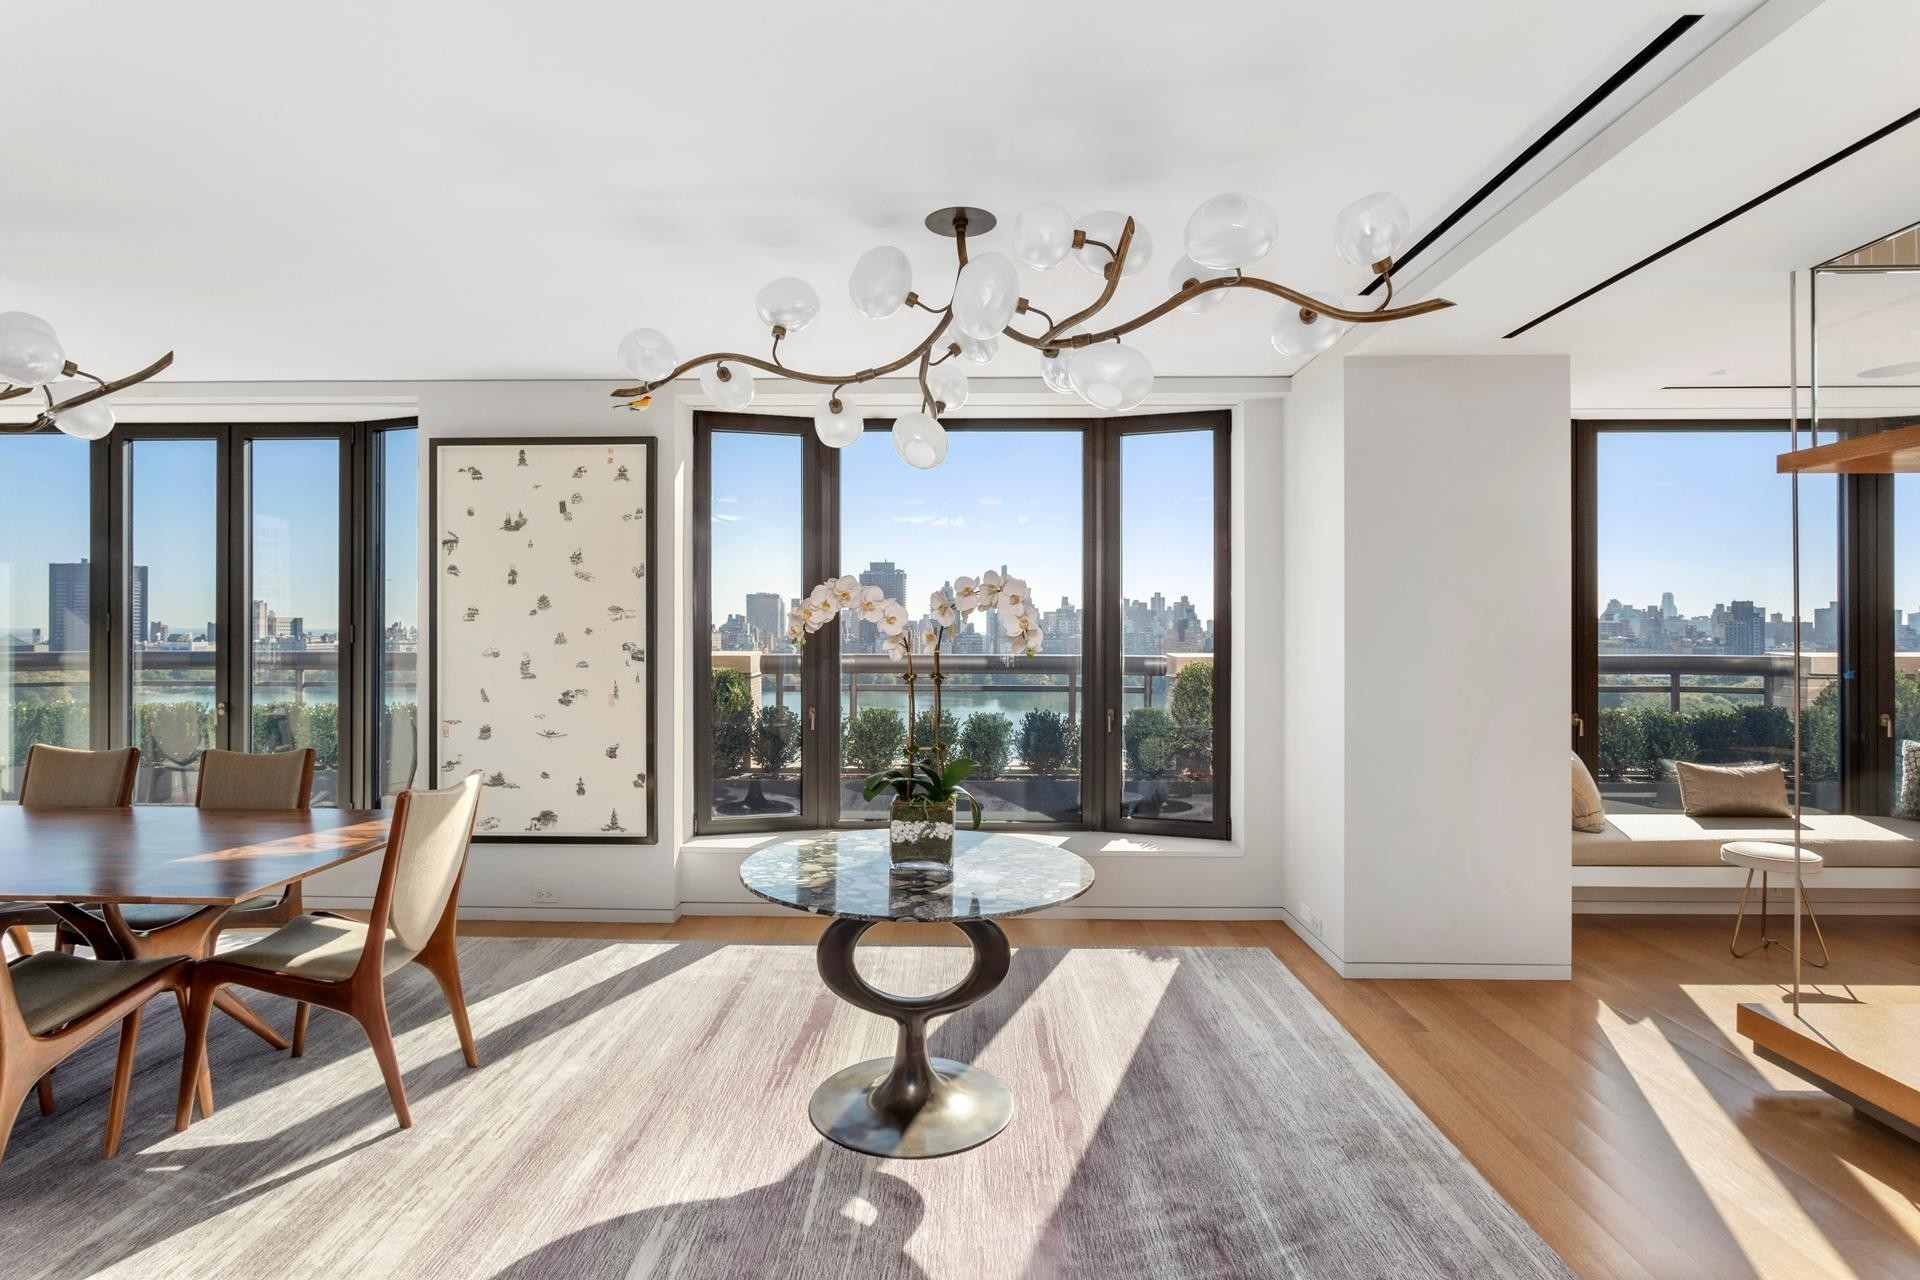 Condominium for Sale at 279 CPW, 279 Central Park West, PHBA Upper West Side, New York, NY 10024